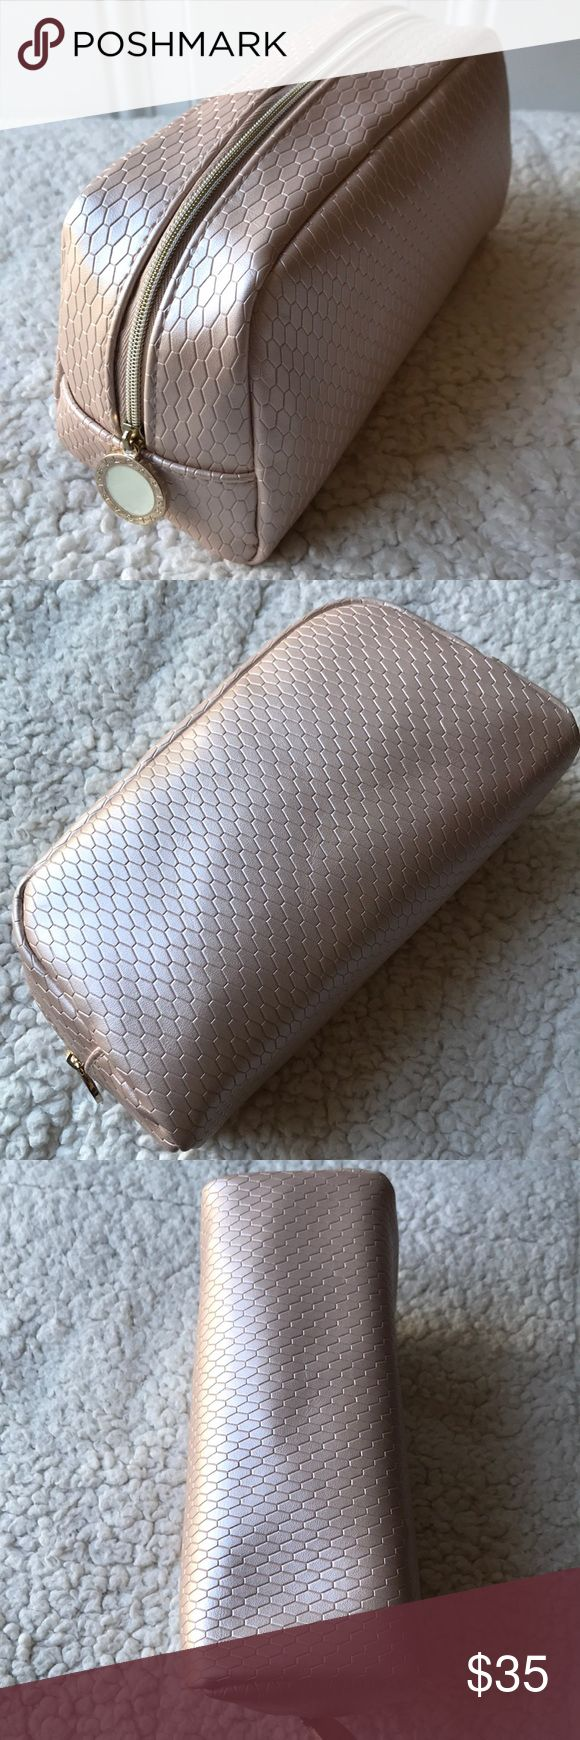 BVLGARI Parfume Pouch Brand new smells beautiful. All original wrapping papers are still inside. Excellent and clean inside out. Tiles patterns. Color is light pink or rose pink. Dimensions is 8L x 4.5H x 3D BVLGARI Bags Cosmetic Bags & Cases